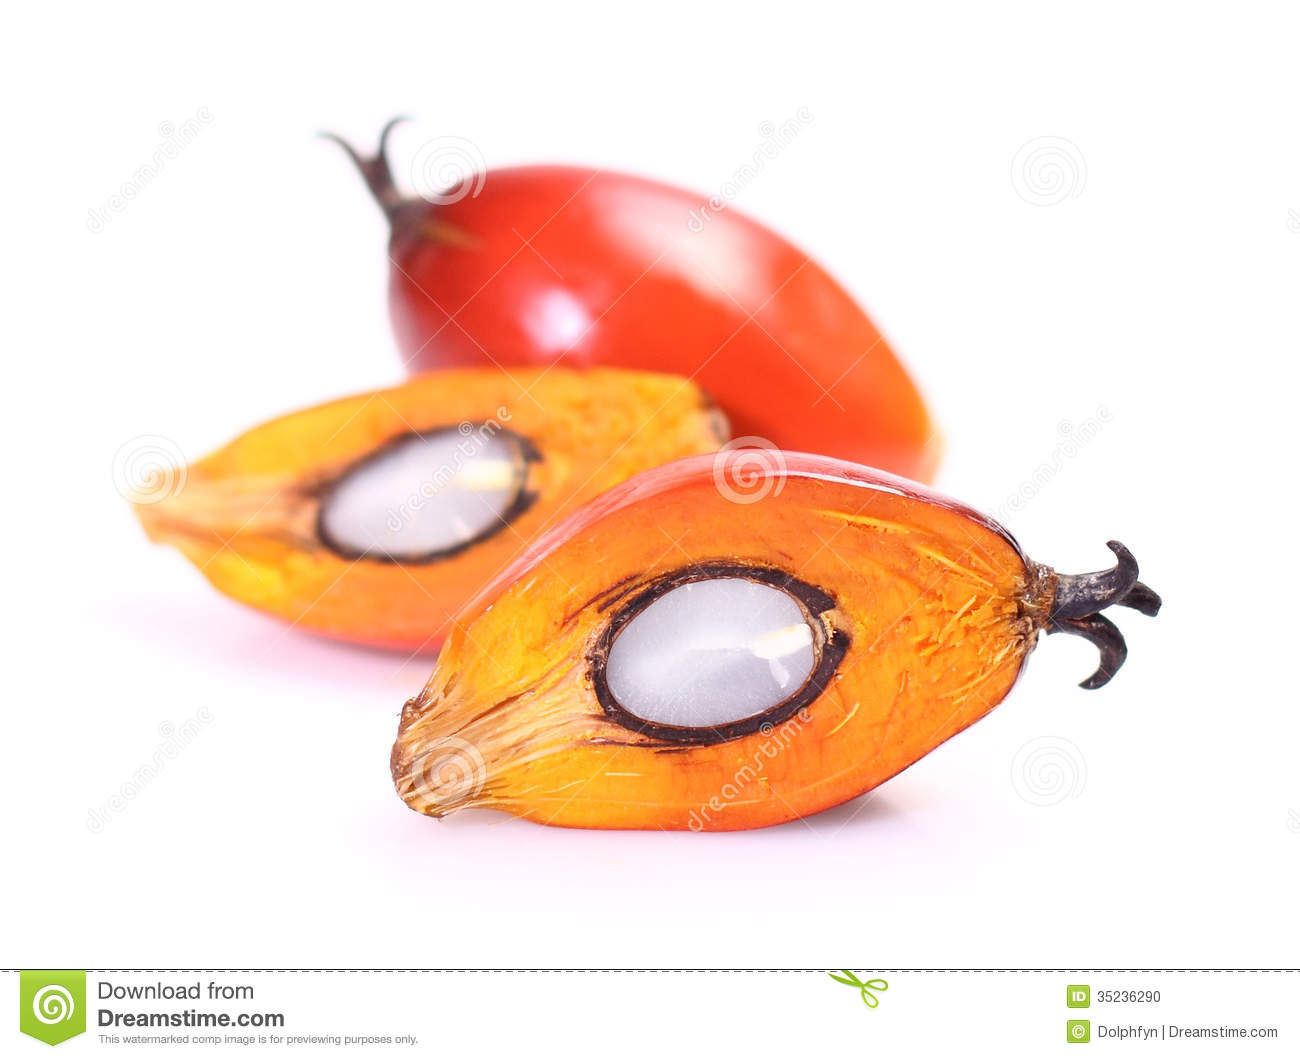 Oil Palm Fruit Stock Photo.